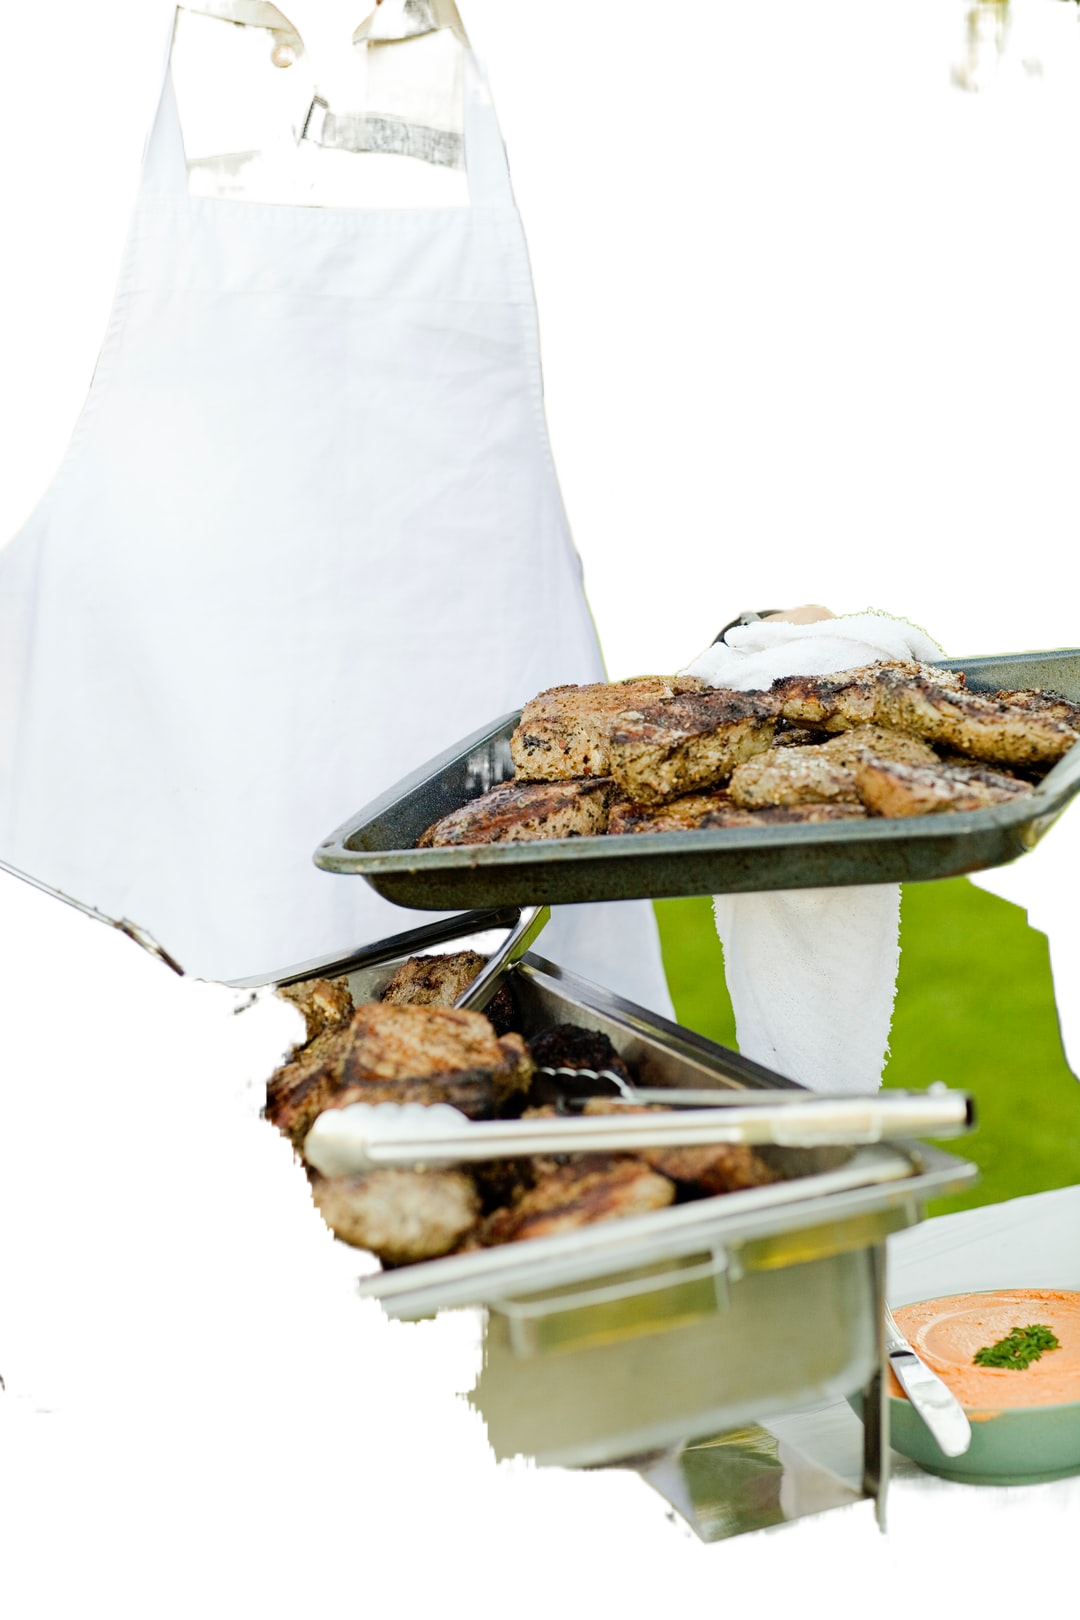 person holding tray filled with grilled meat